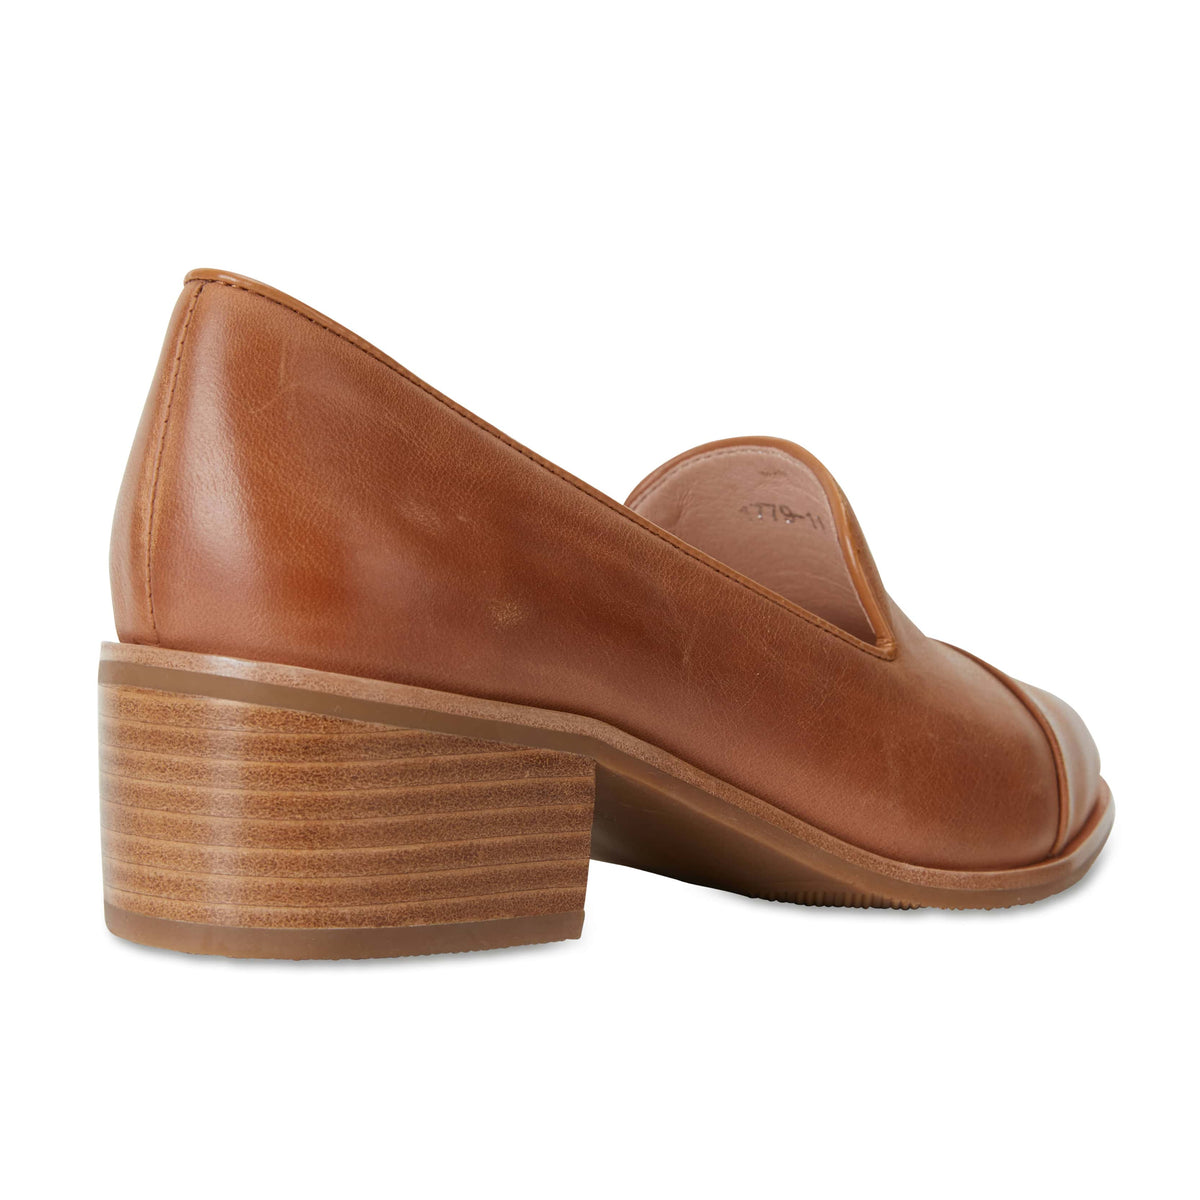 Expert Loafer in Tan Leather